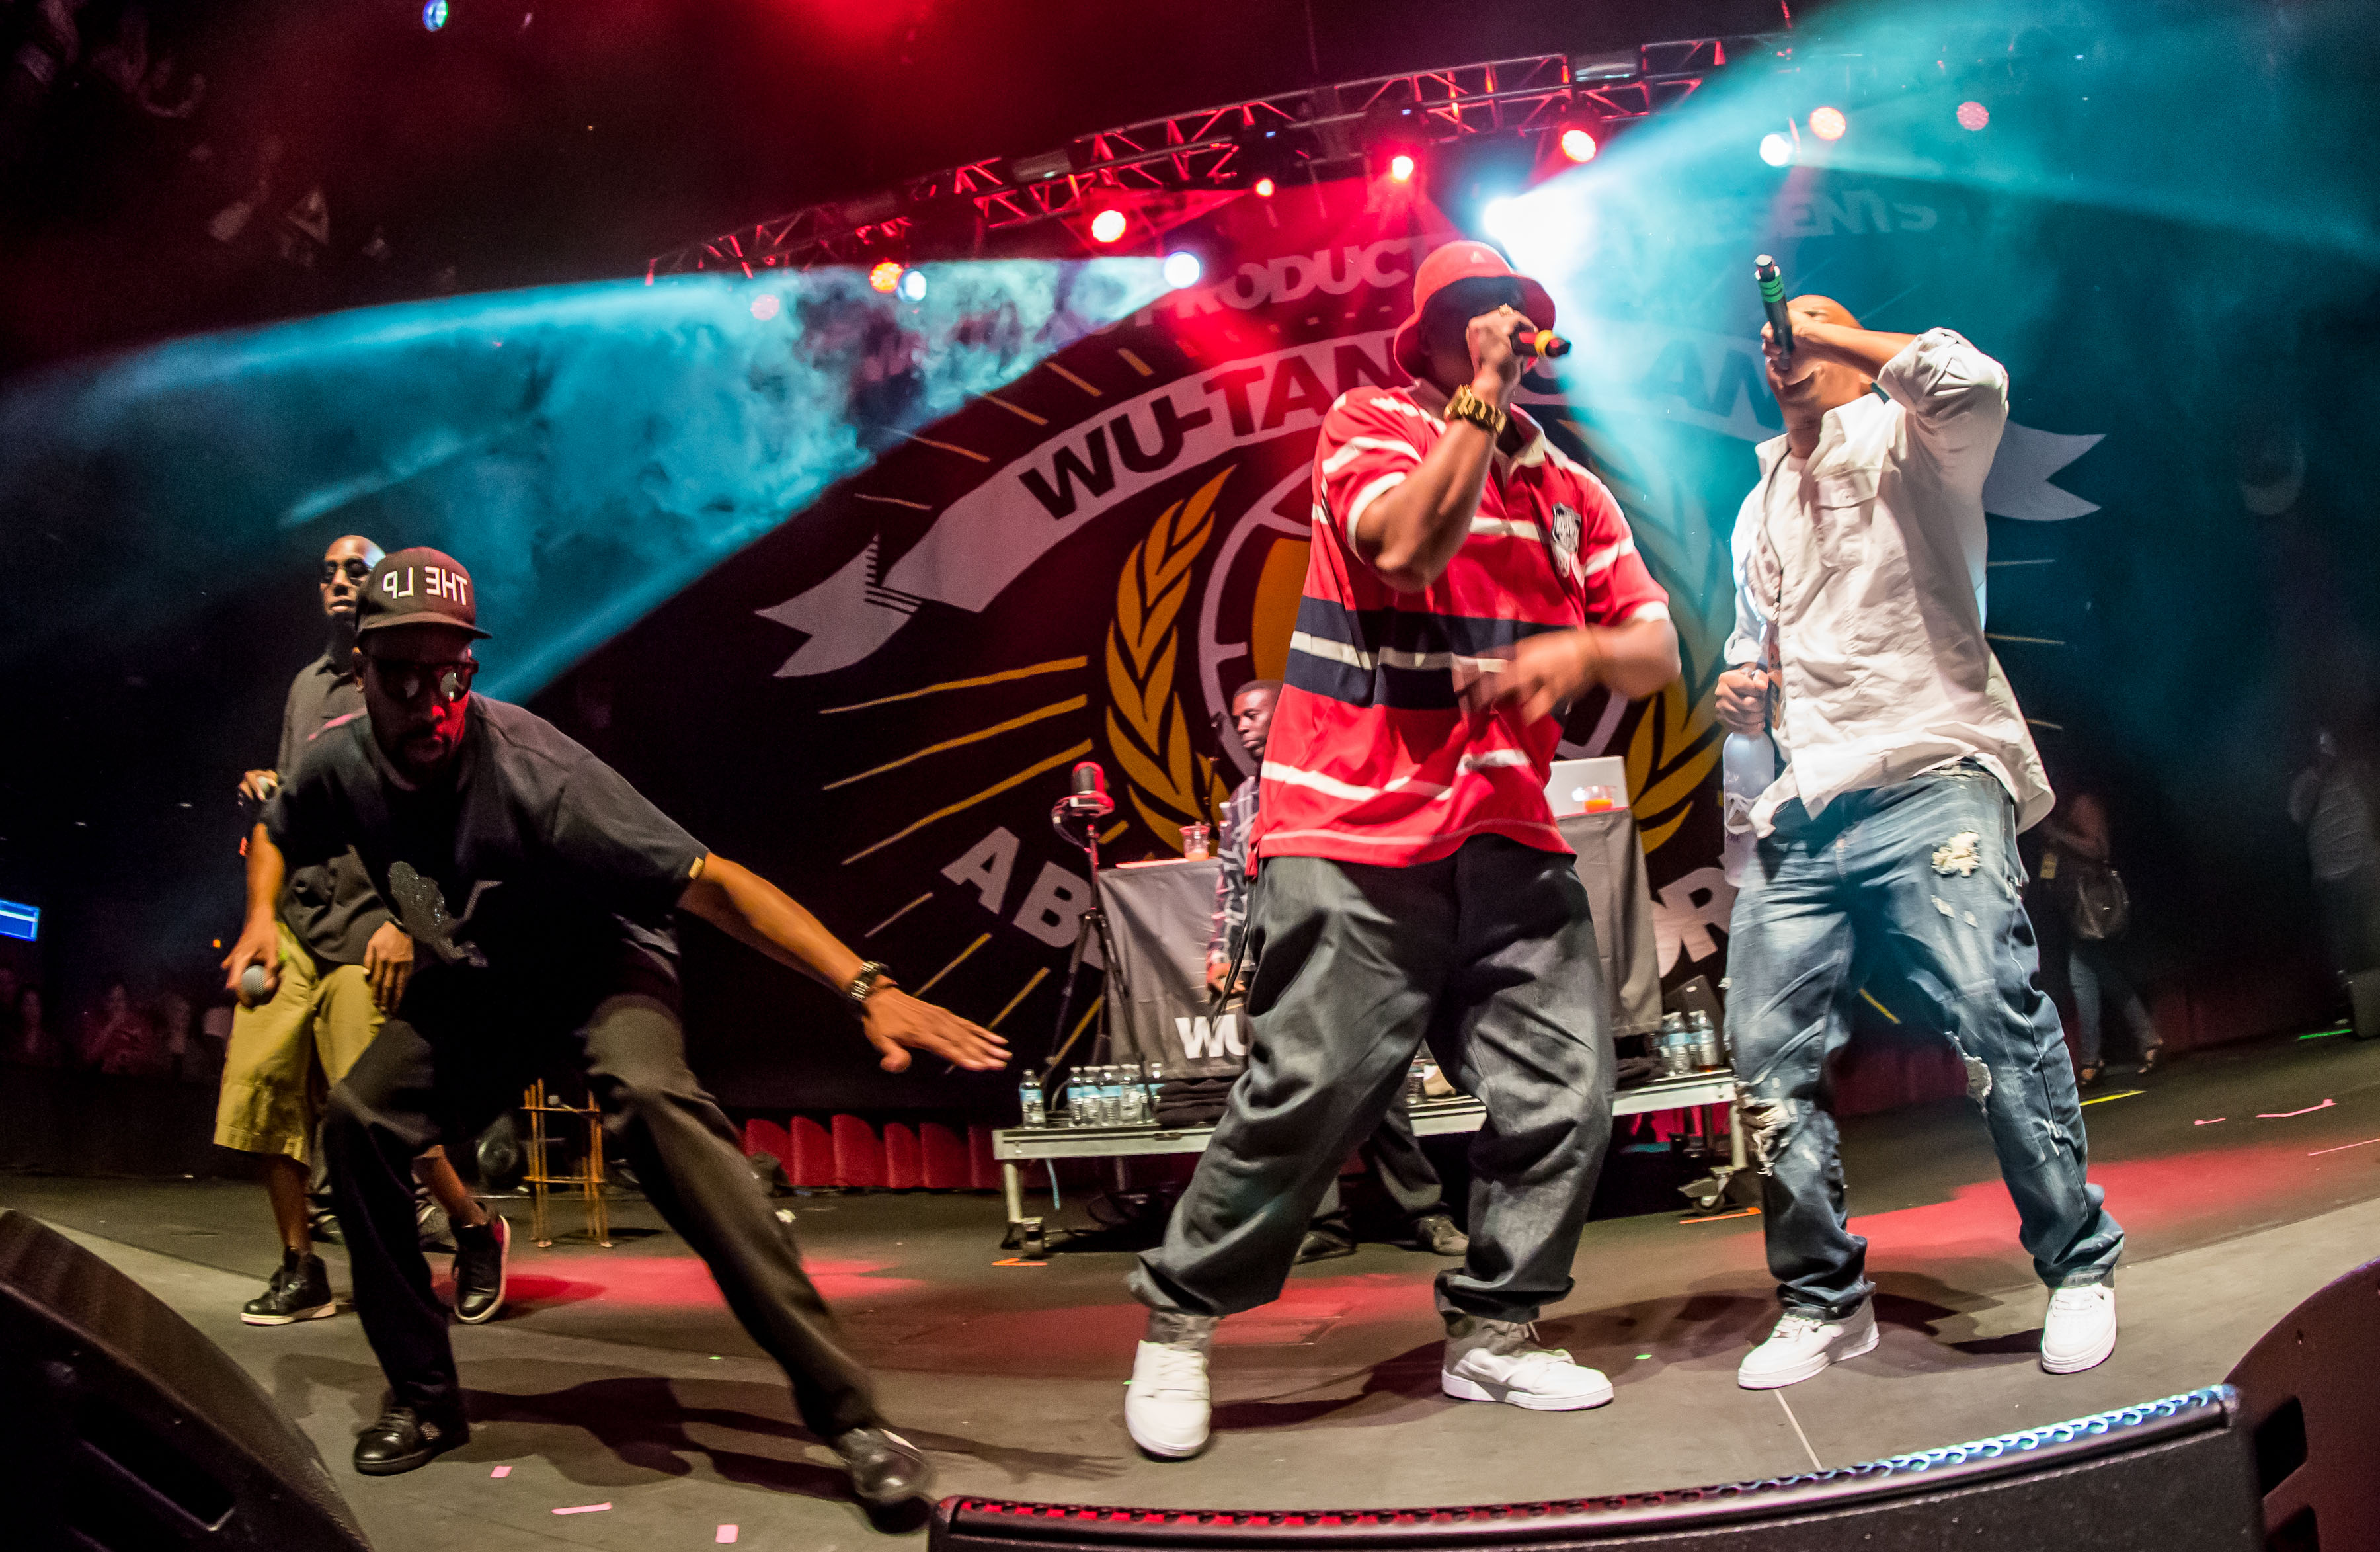 Wu-Tang ClanWu-Tang Clan in concert, Brooklyn Bowl, Las Vegas, America - 18 Sep 2014